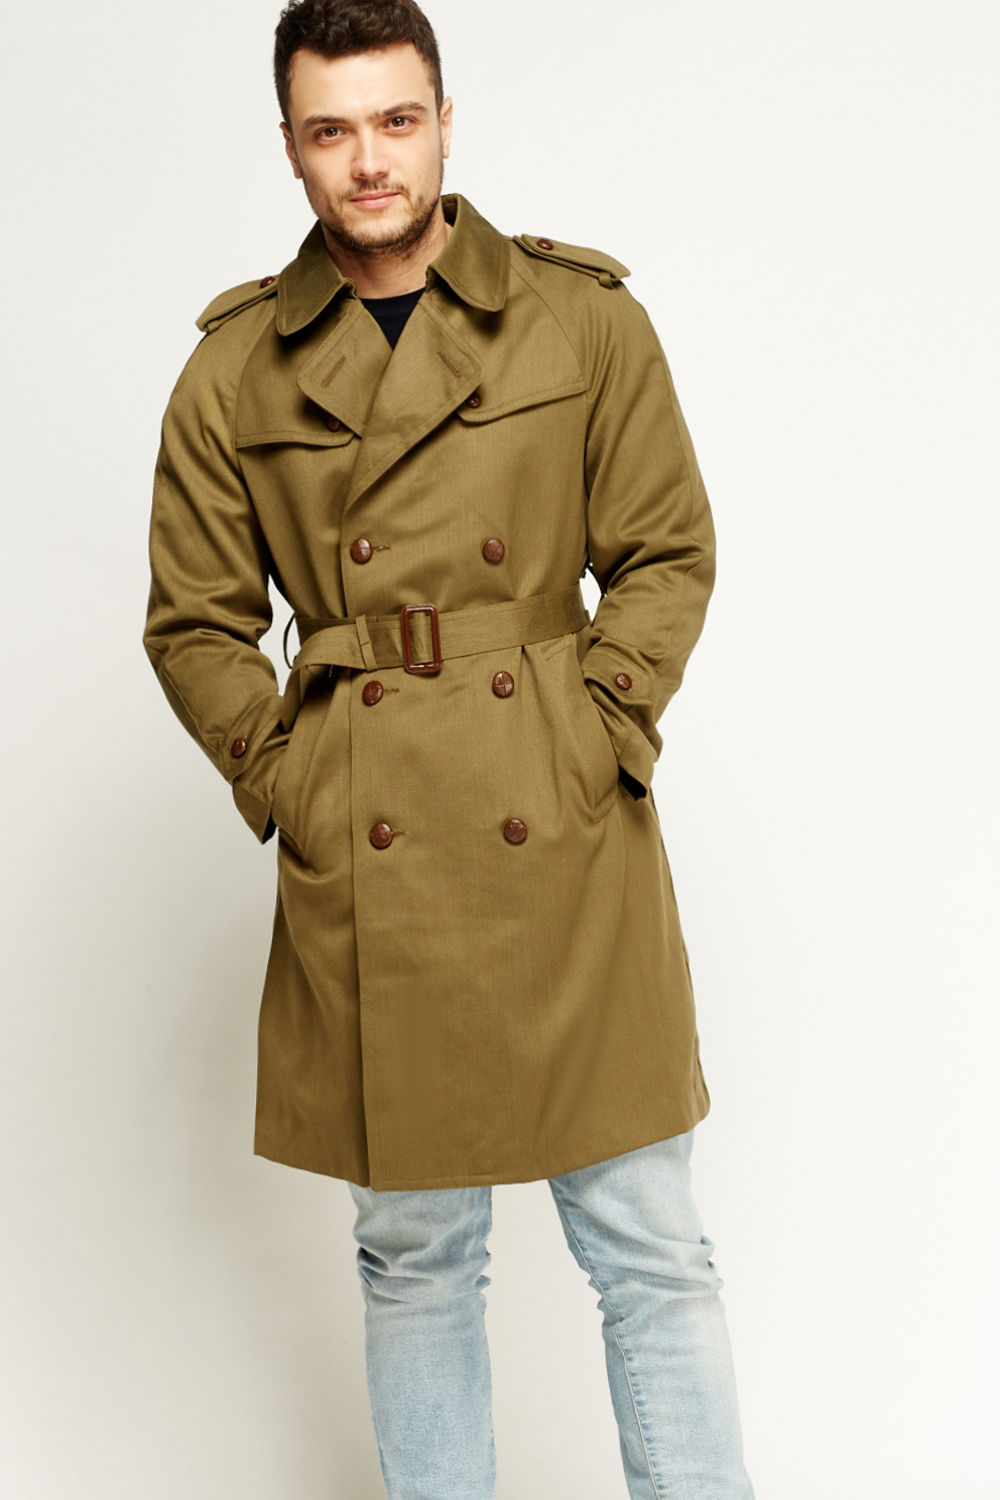 Find great deals on eBay for khaki coat. Shop with confidence.